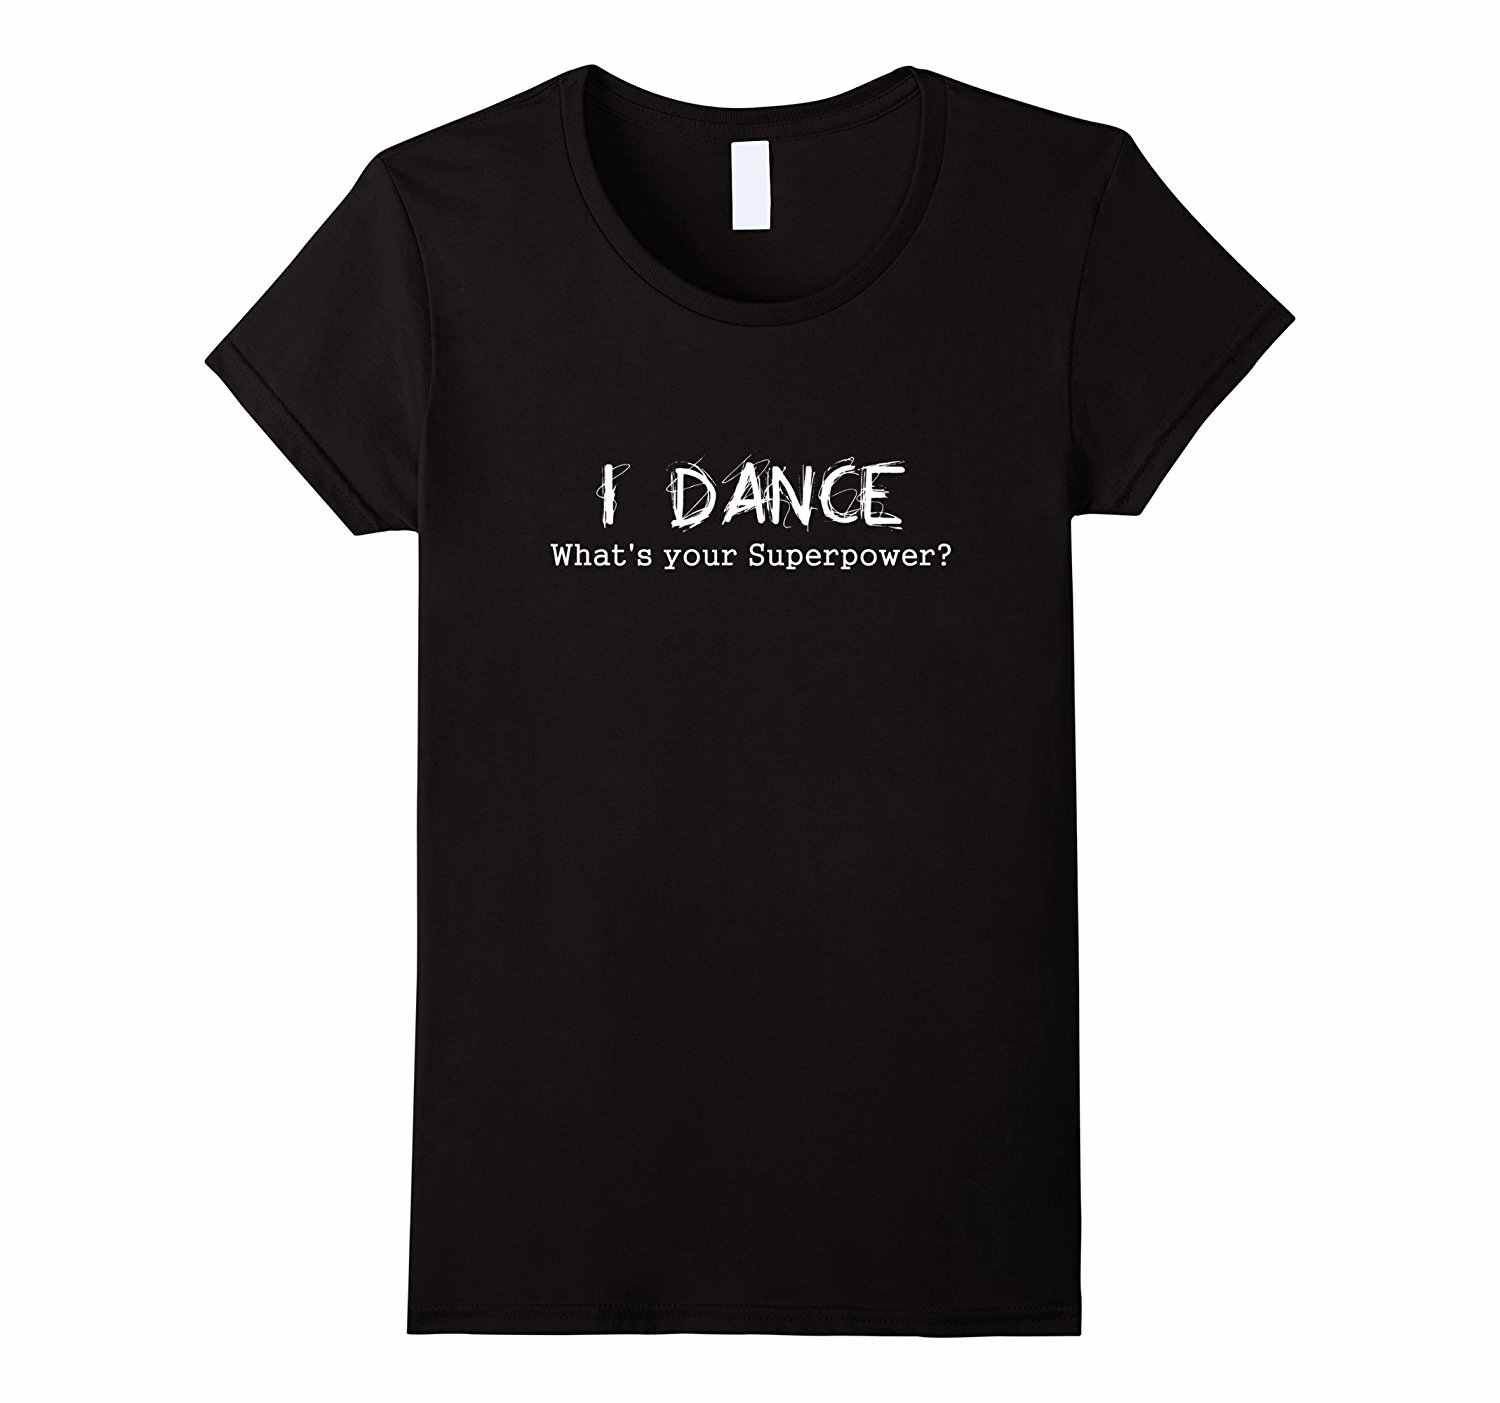 I Dance Whats Your Superpower T-shirt Dancing Dancer T Shirt New 2018 Free Shipping Summer Women Short Sleeve Tee Shirt